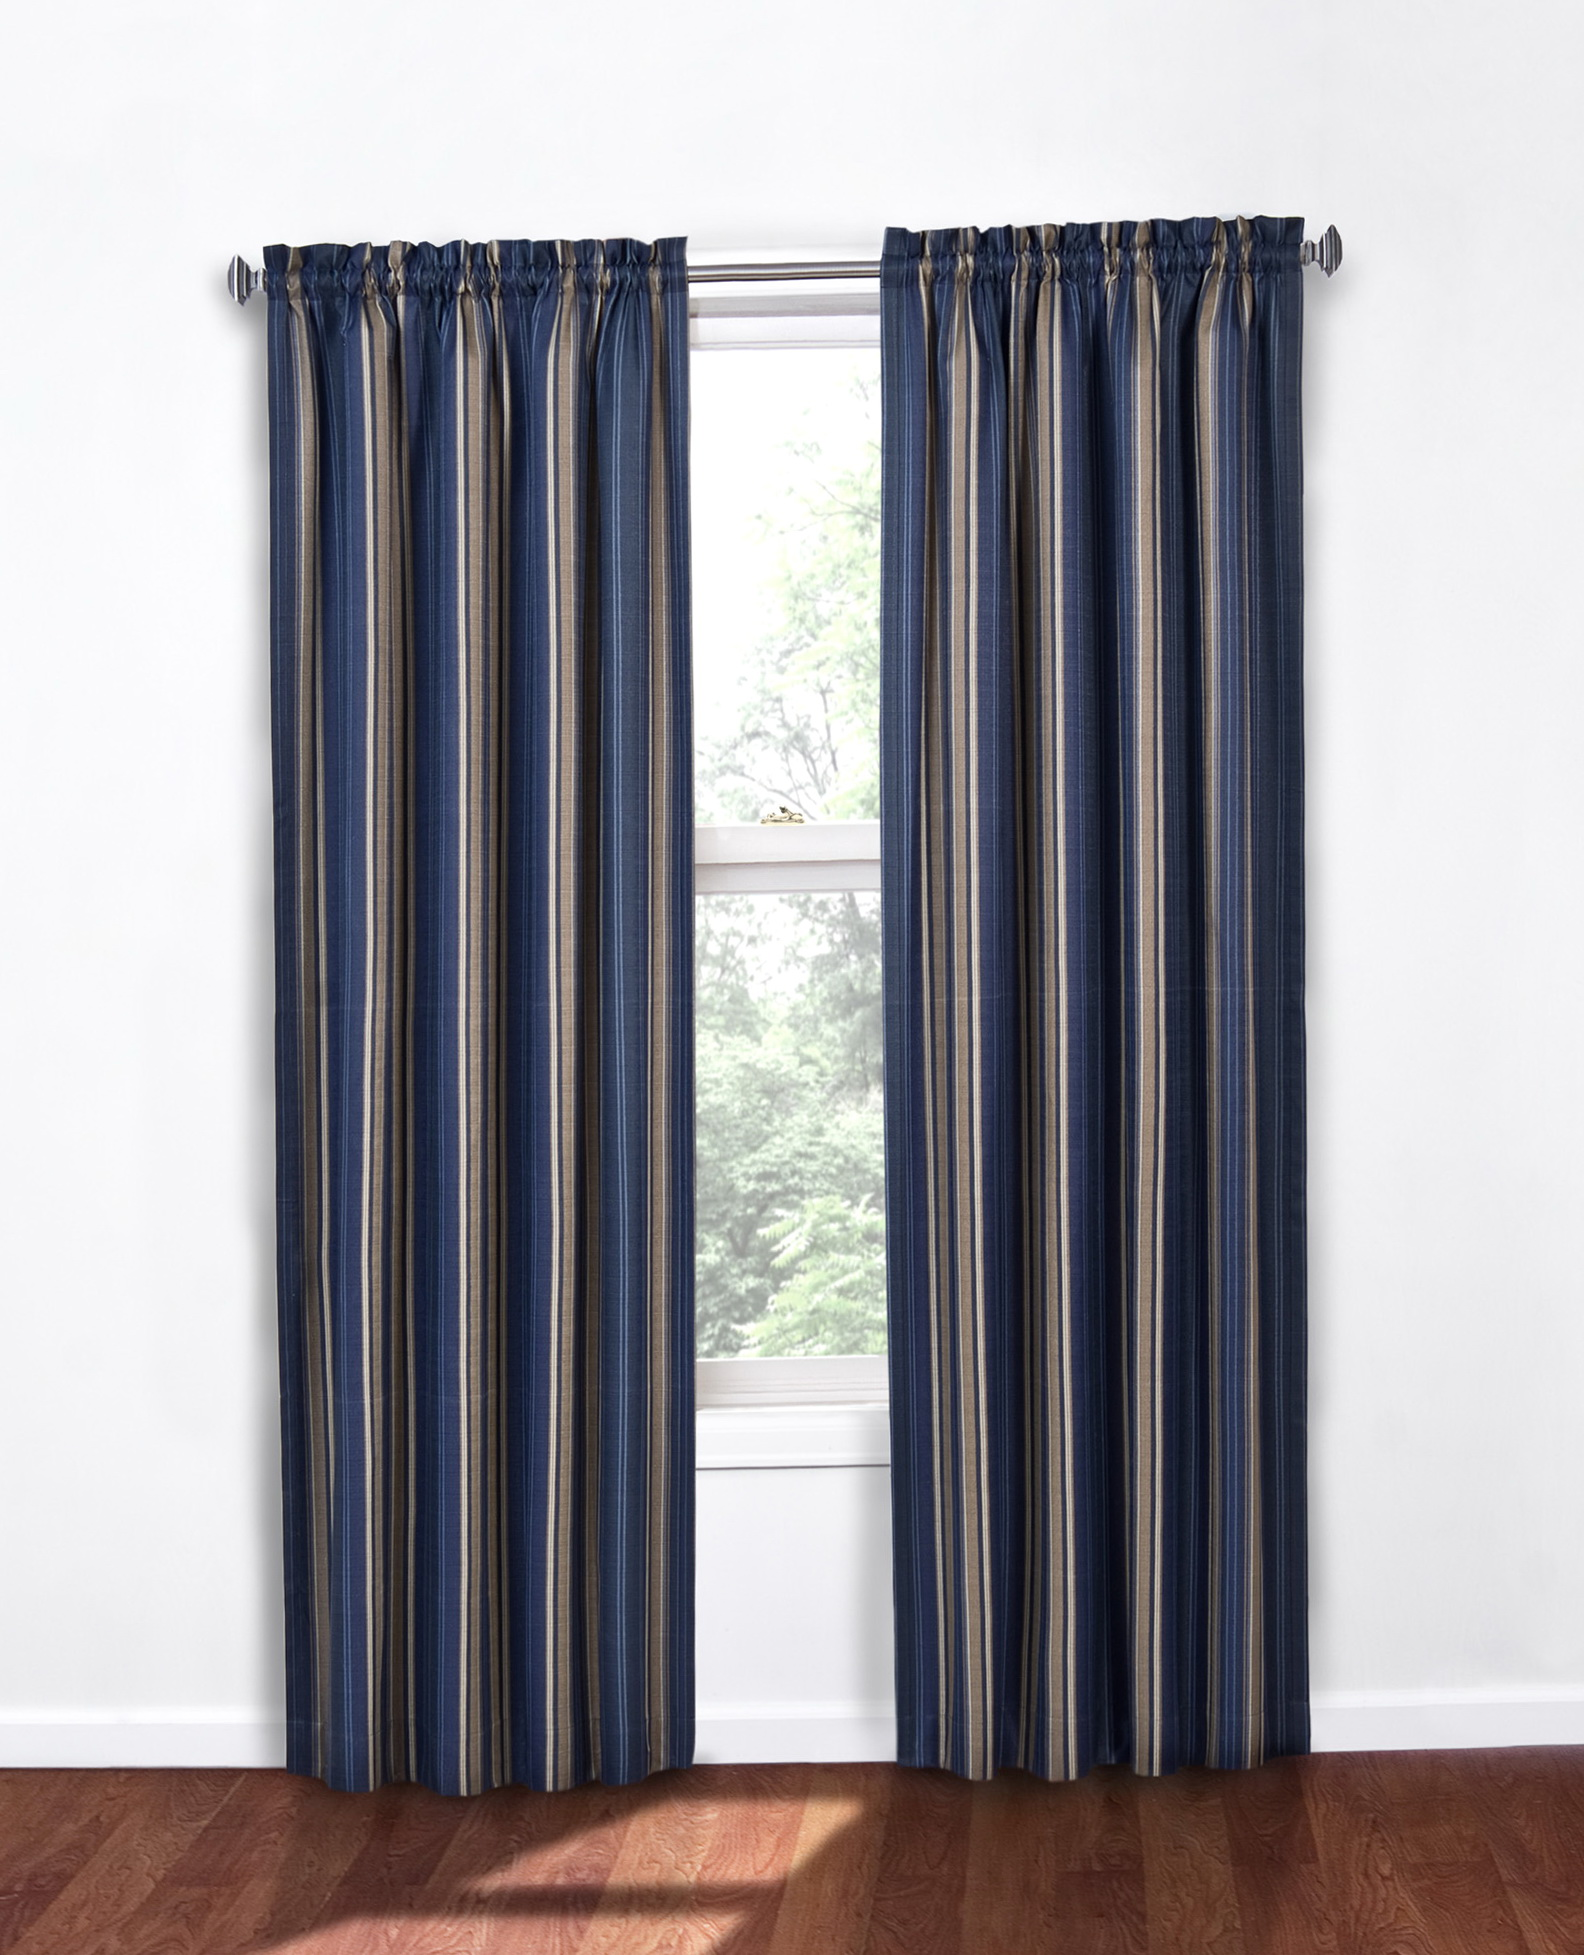 Blackout Curtains Walmart Home Design Ideas